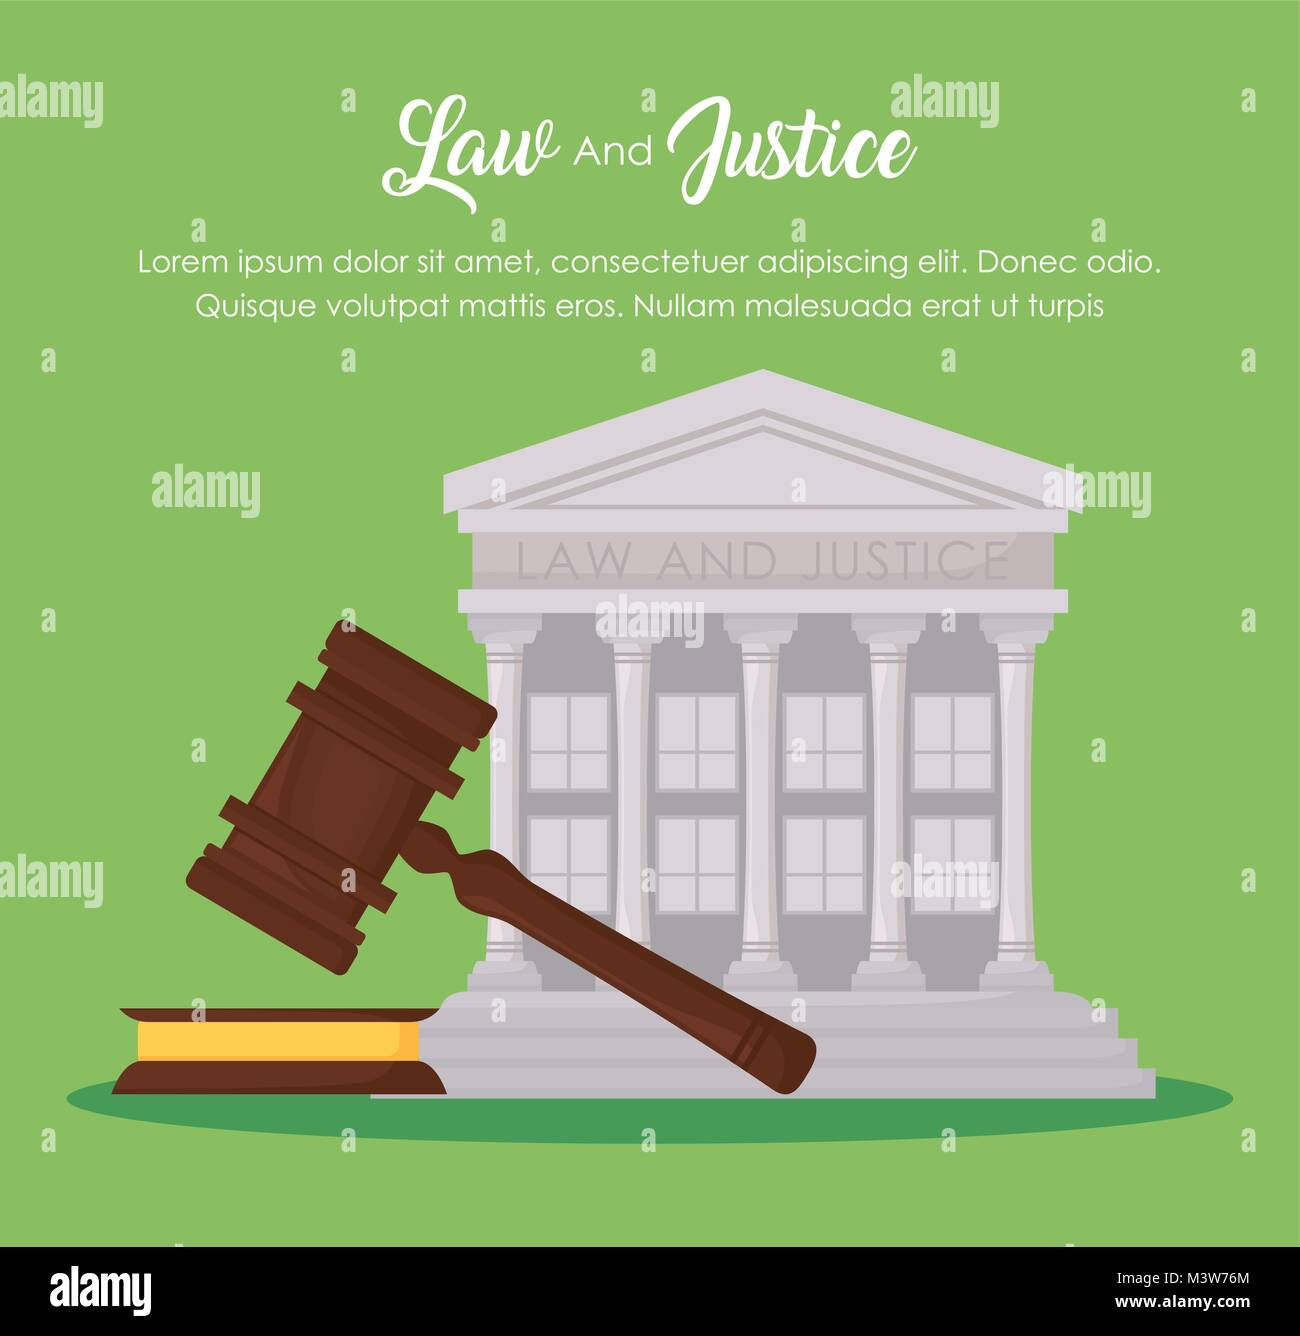 Law and justice design - Stock Vector